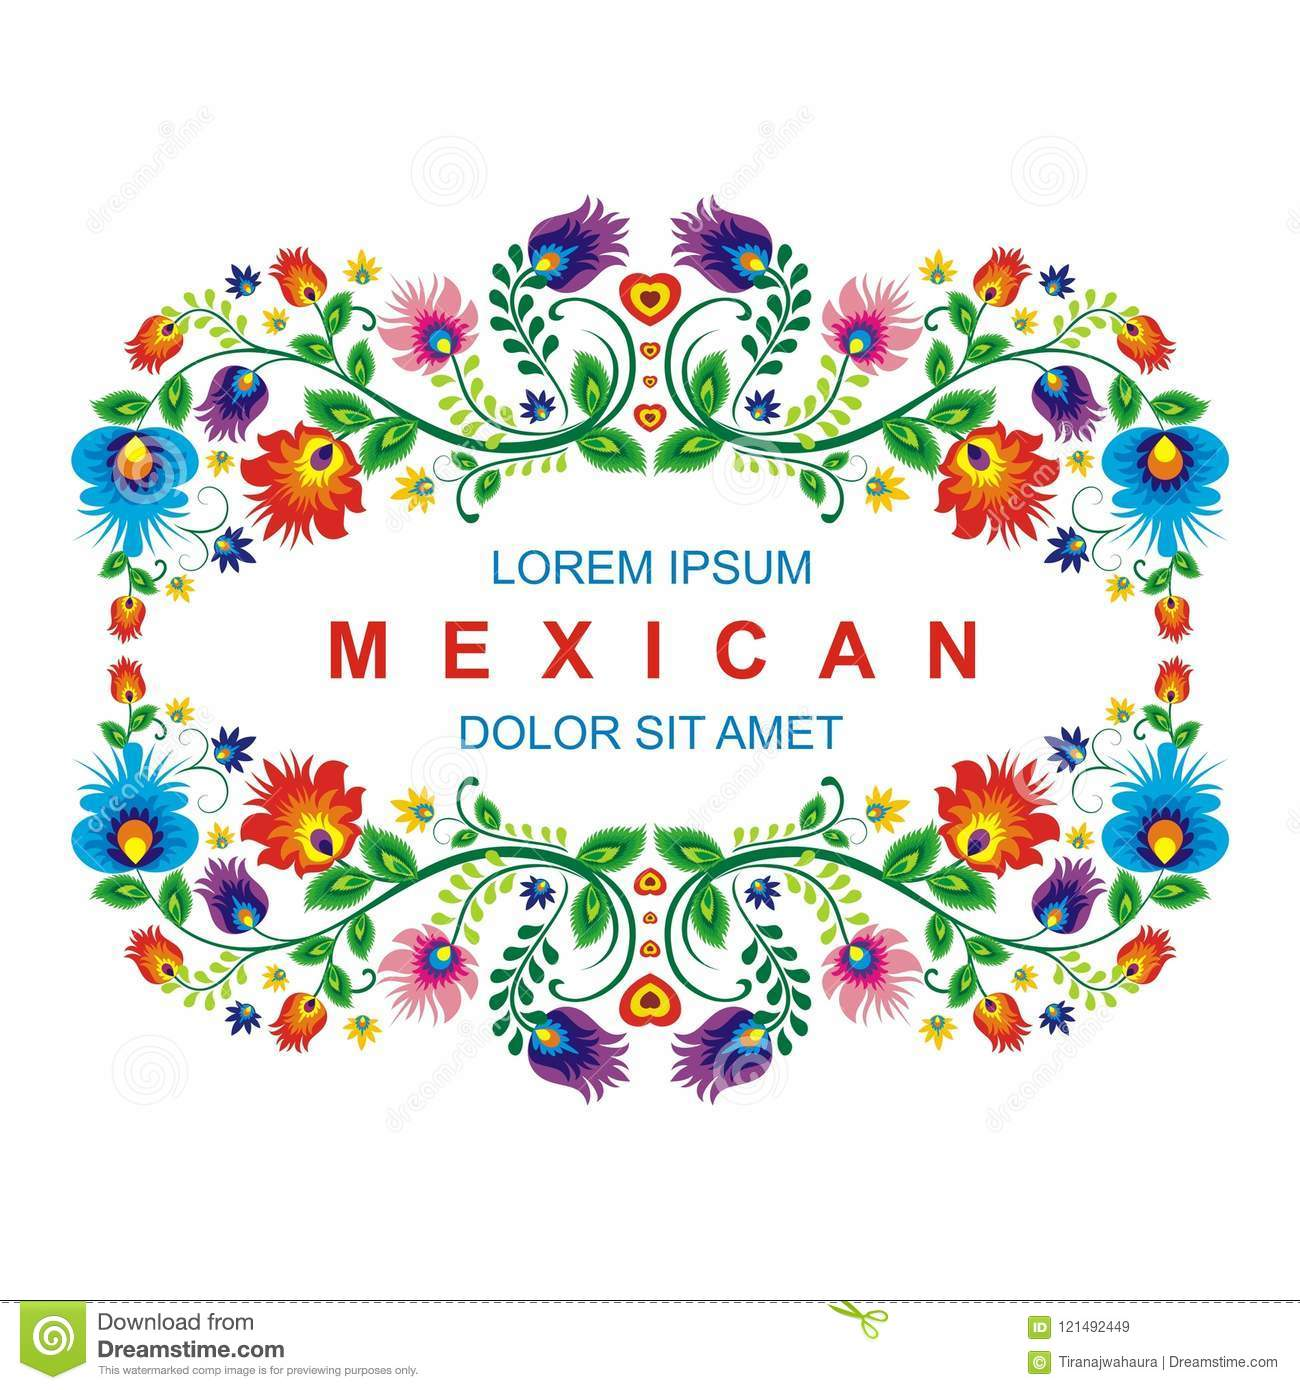 Lovely Mexican Ethnic Floral Decoration Design With Colorful Flowers Frame Suitable For Wedding Or Party Invitation Greeting Card: Mexican Wedding Invitation Backgrounds At Reisefeber.org